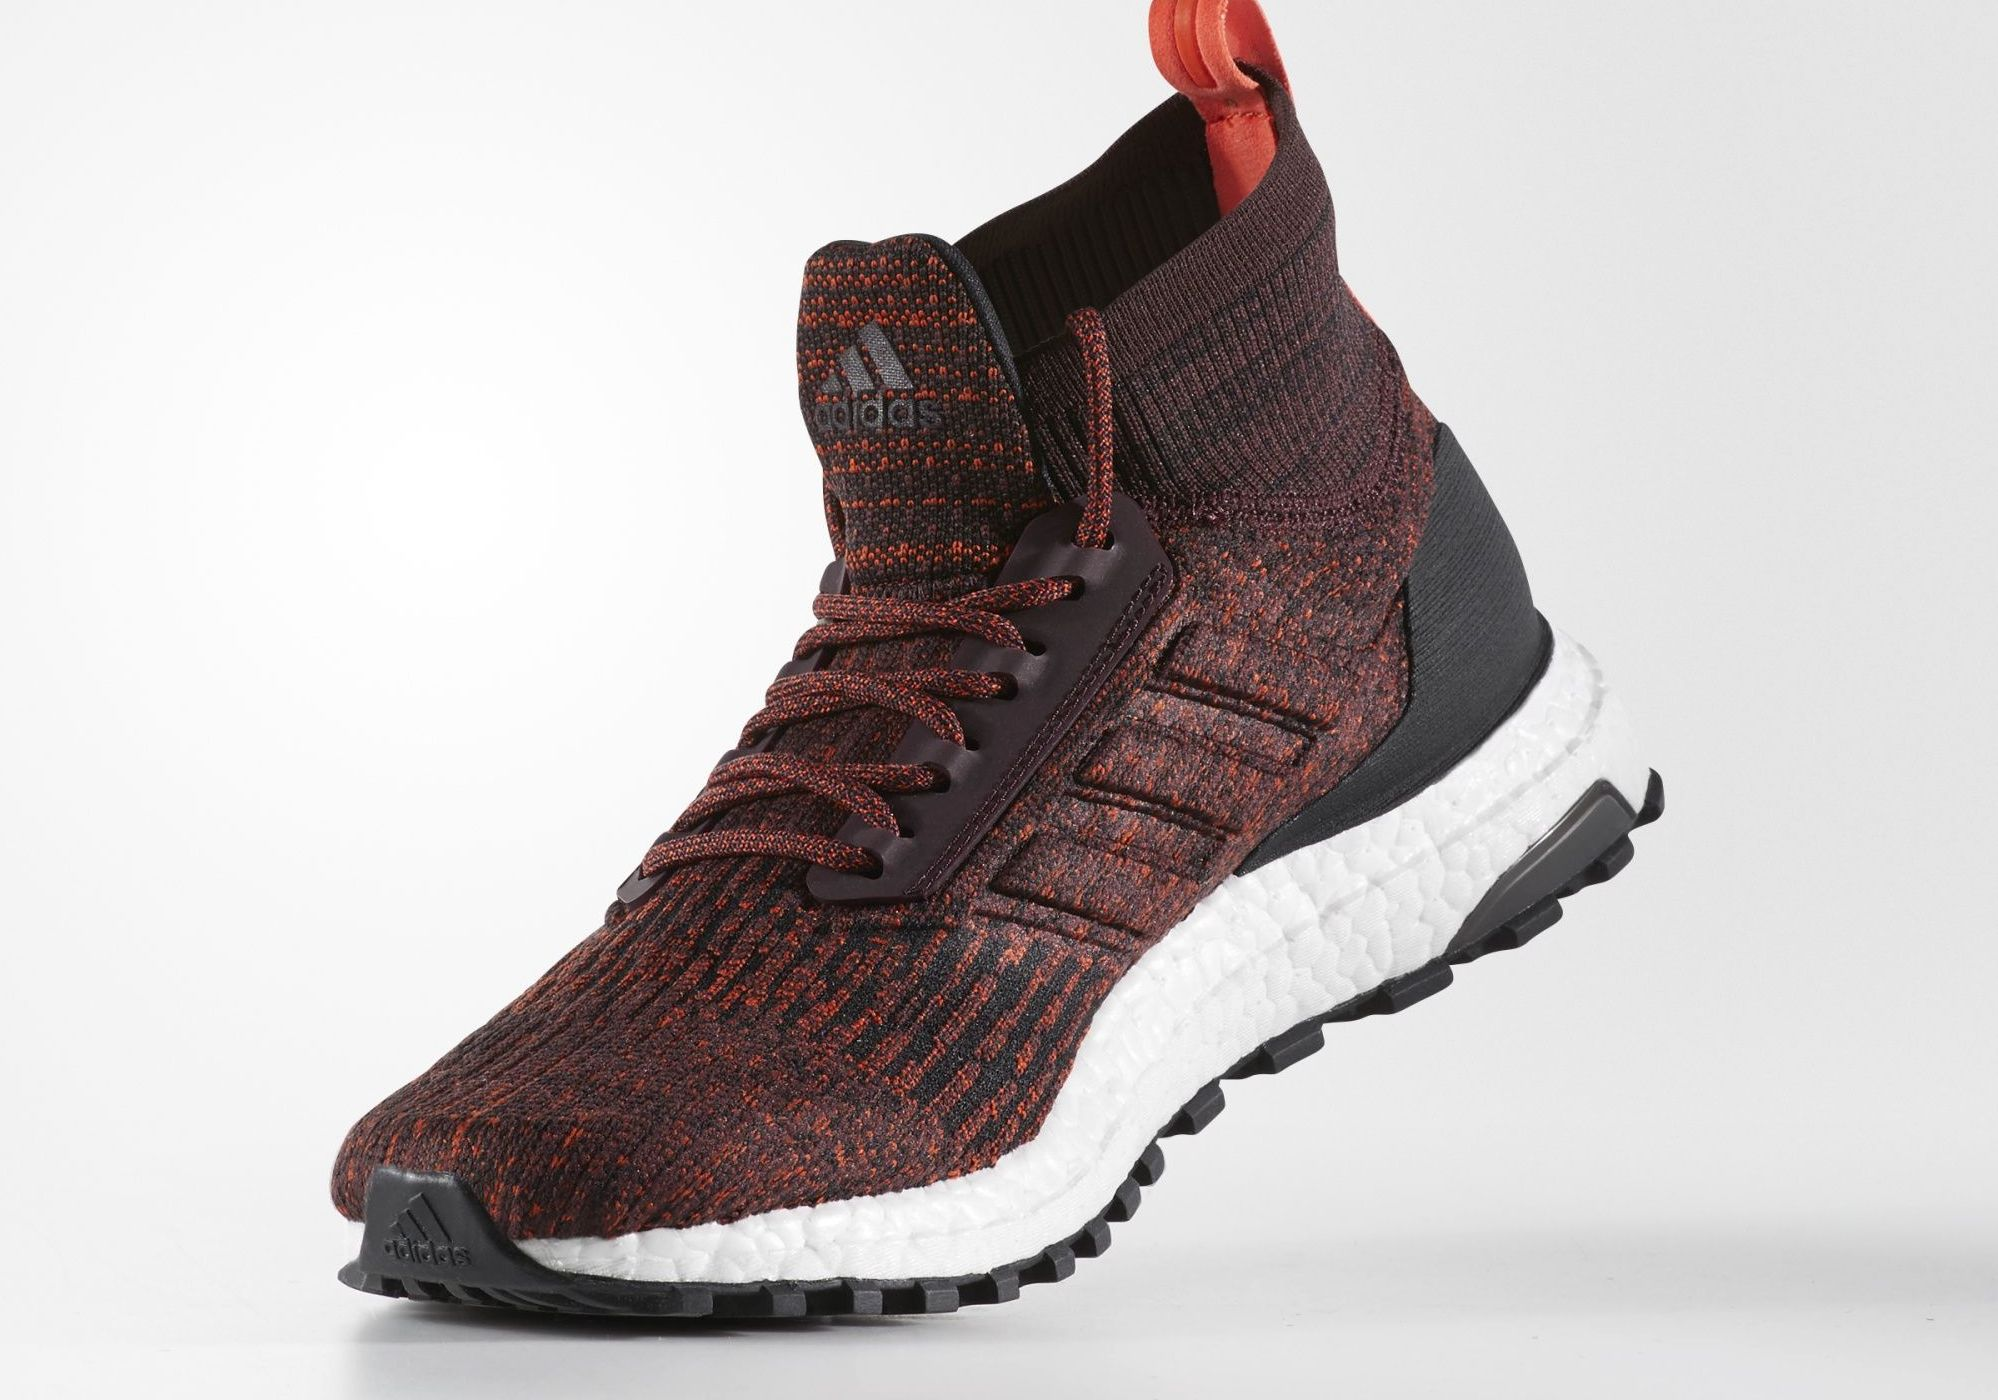 778b7bec826 The adidas UltraBoost ATR Mid is an Off-Road Upgrade - WearTesters